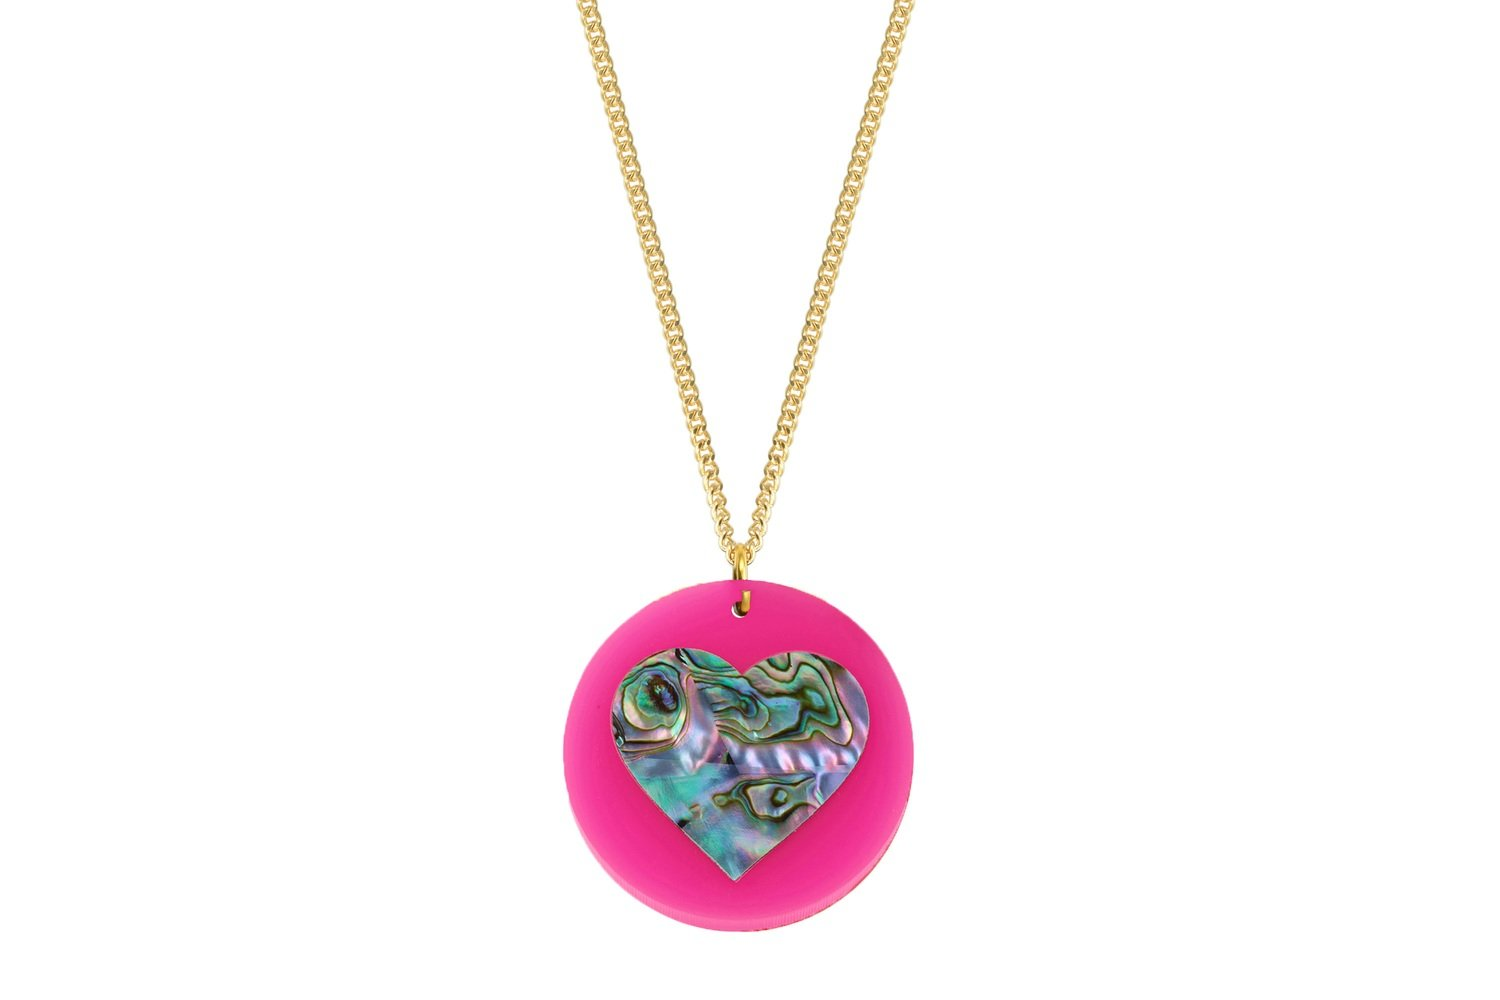 Mother of Pearl Heart Pendant with Chain